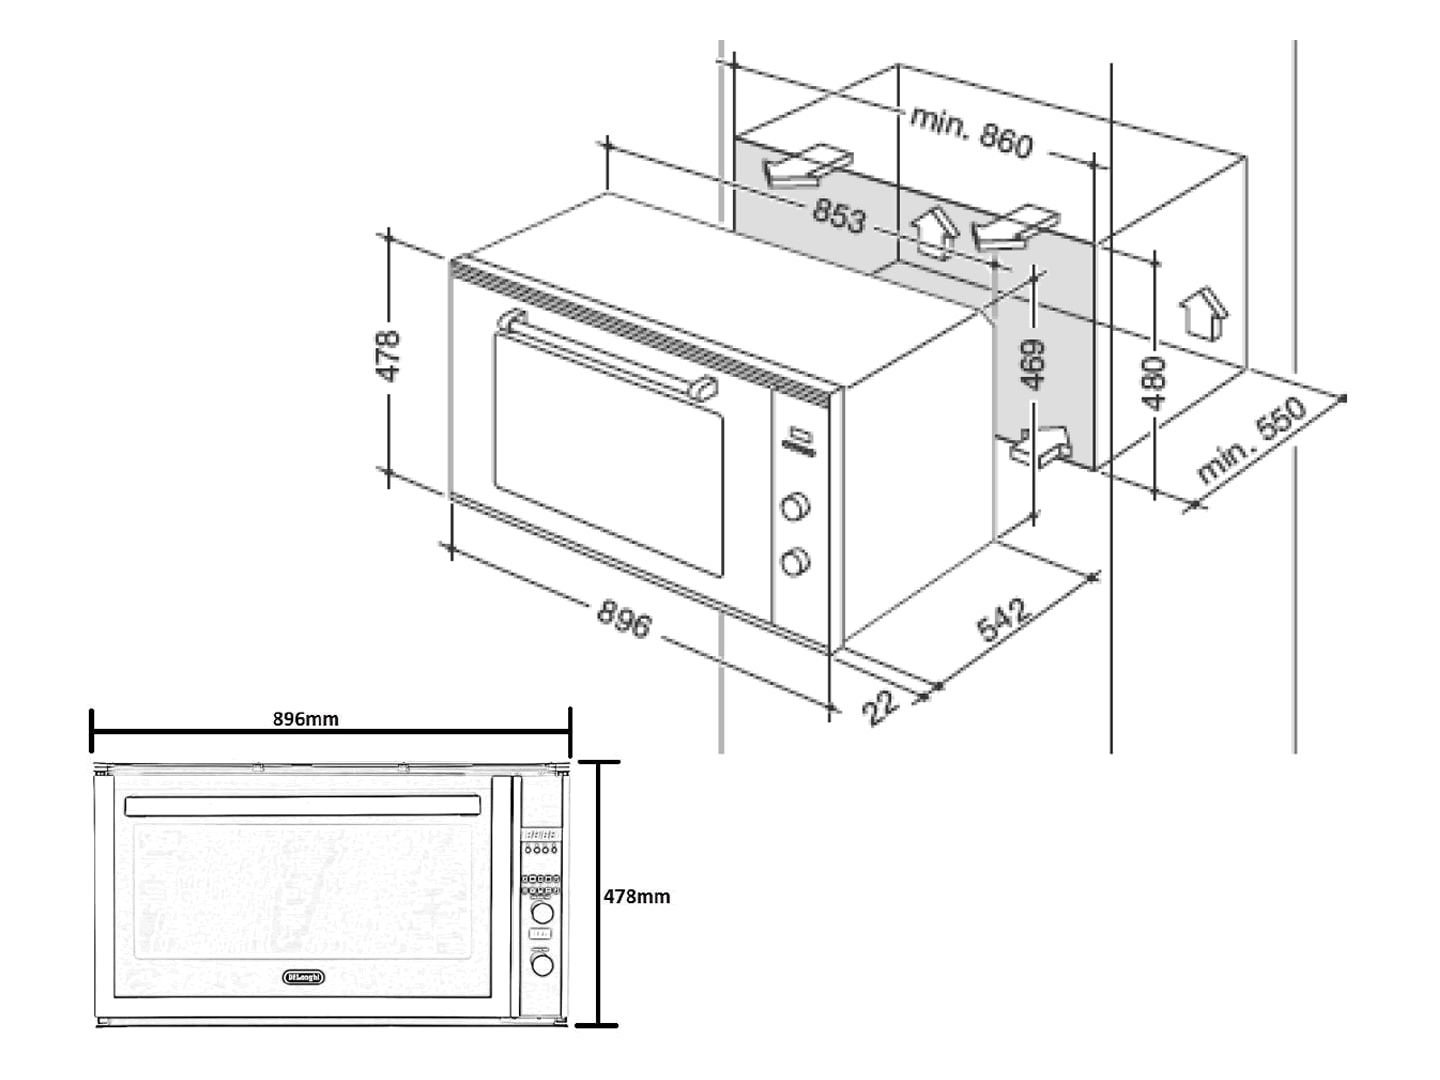 Multifunction Programmable Oven DE908MP - Installation Diagram